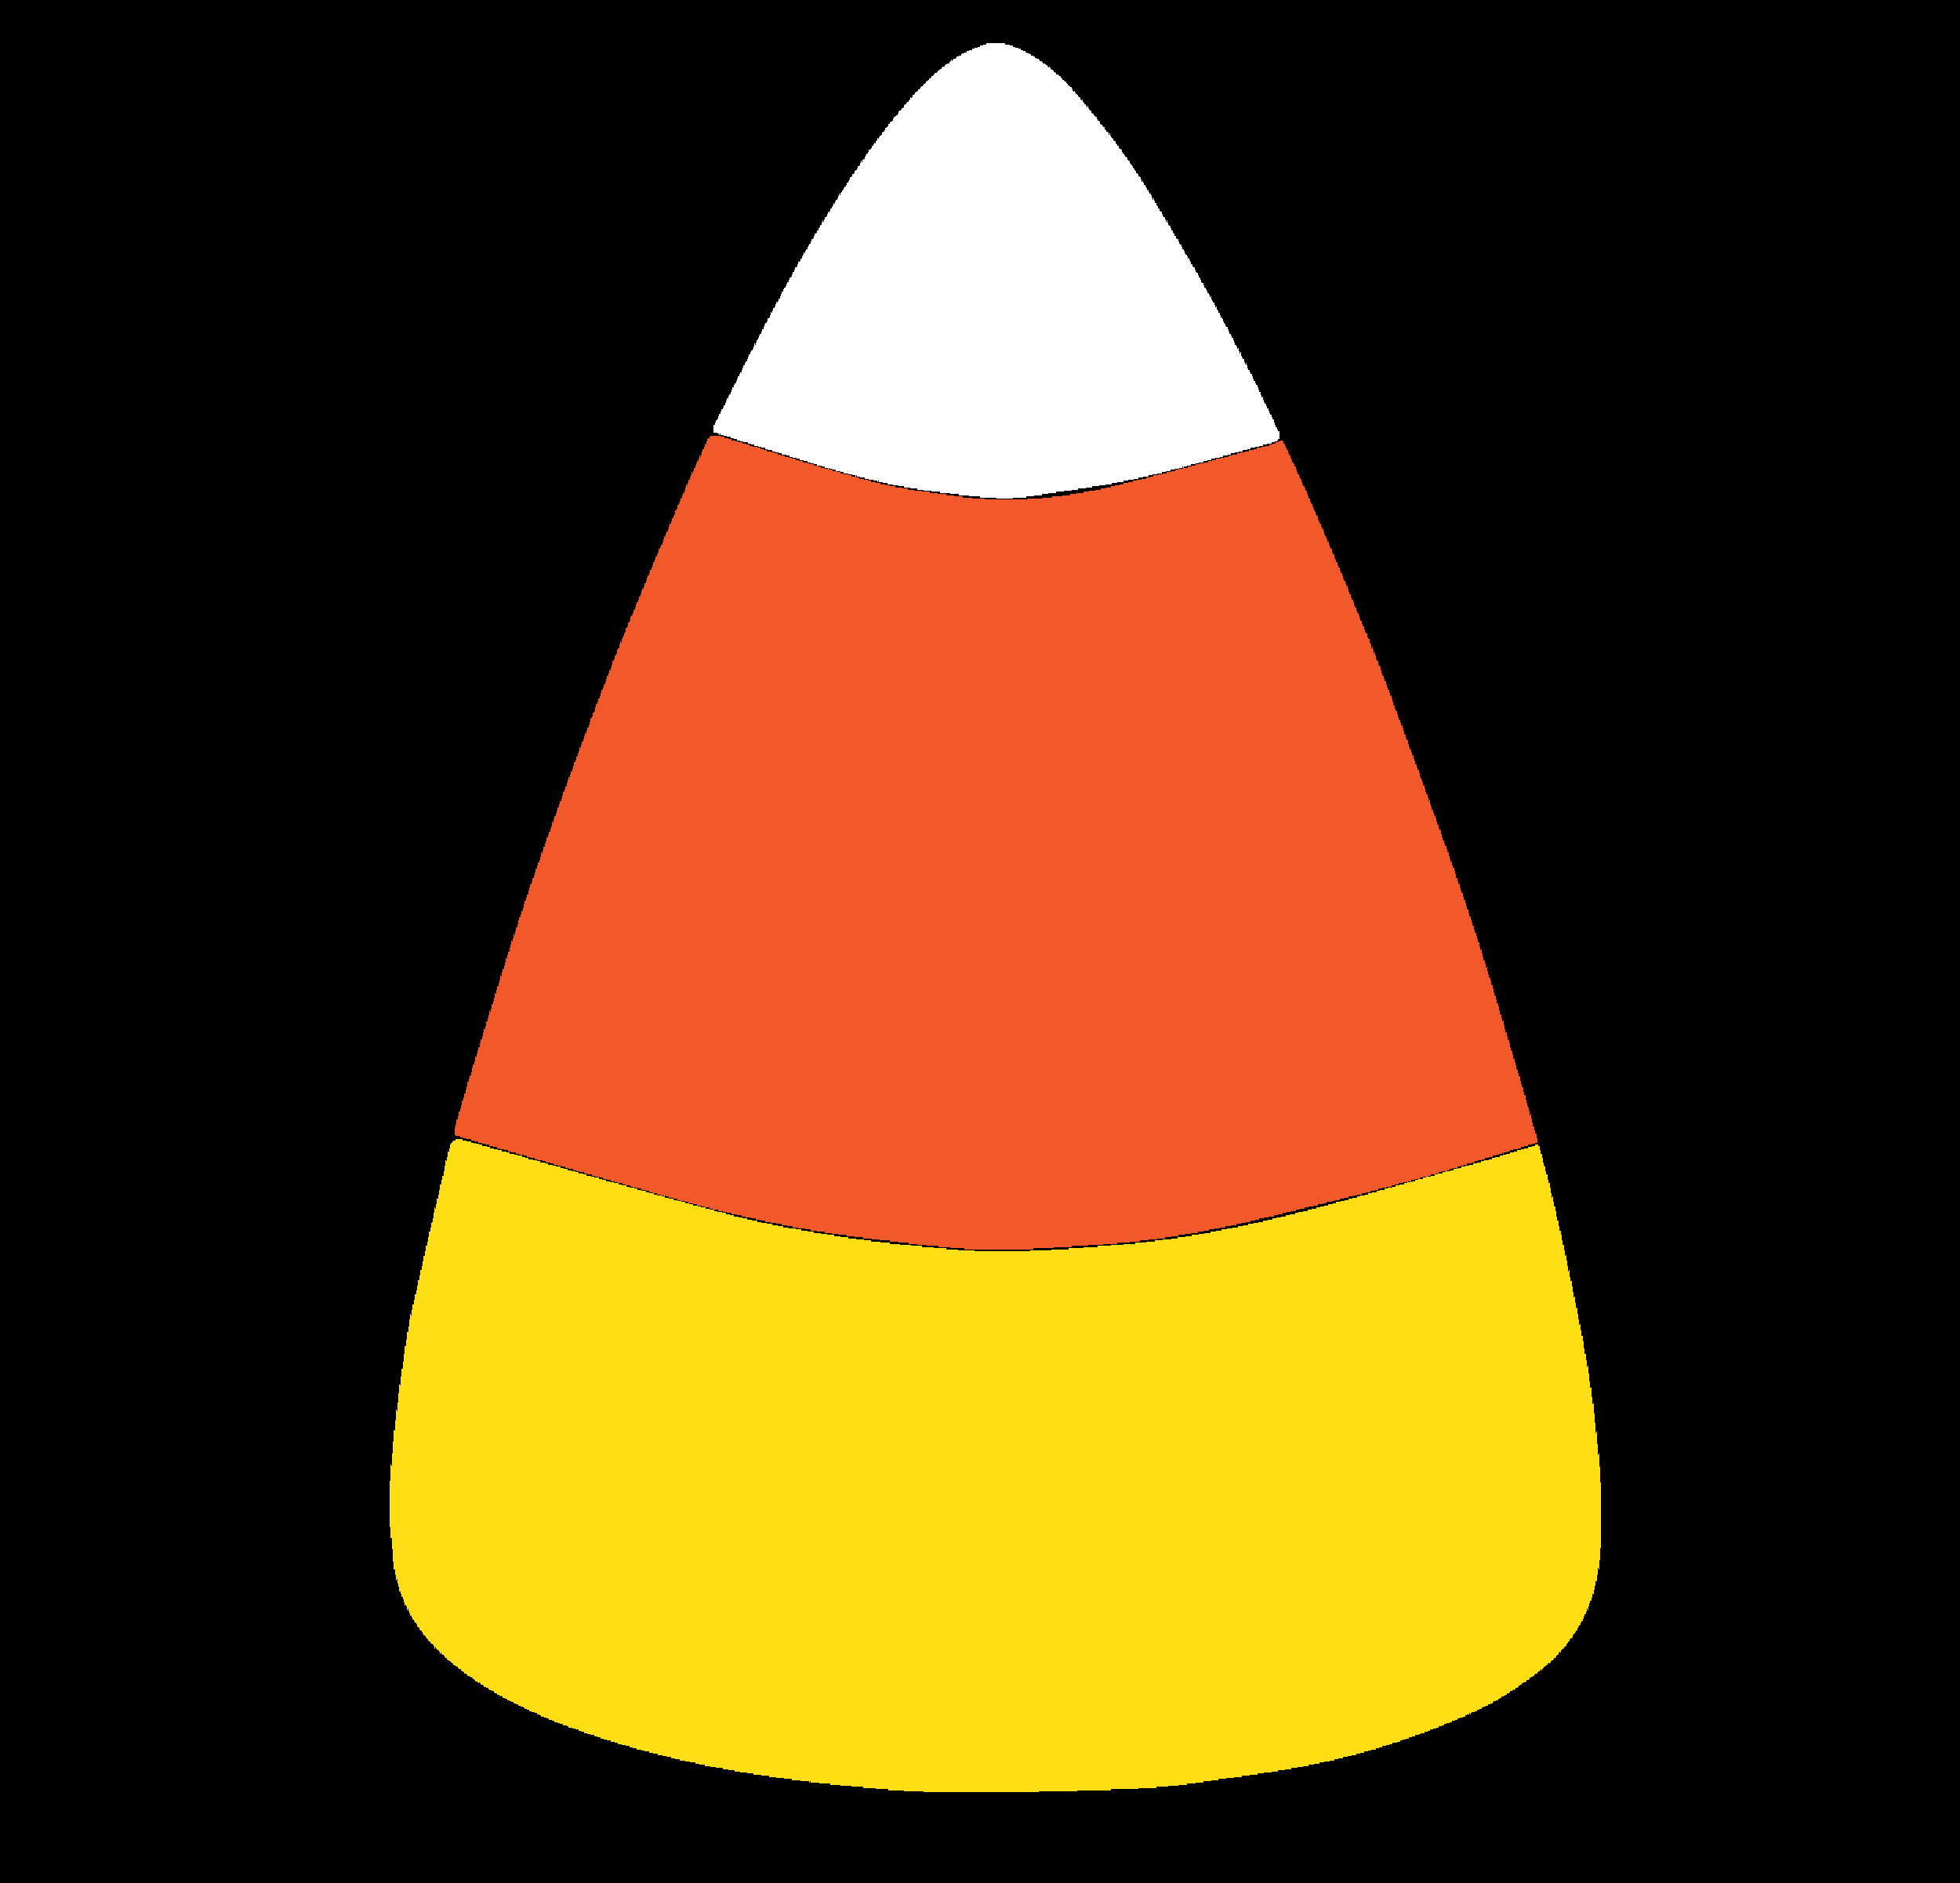 Candy Corn Clipart  Can s clipart vector transparent background png free